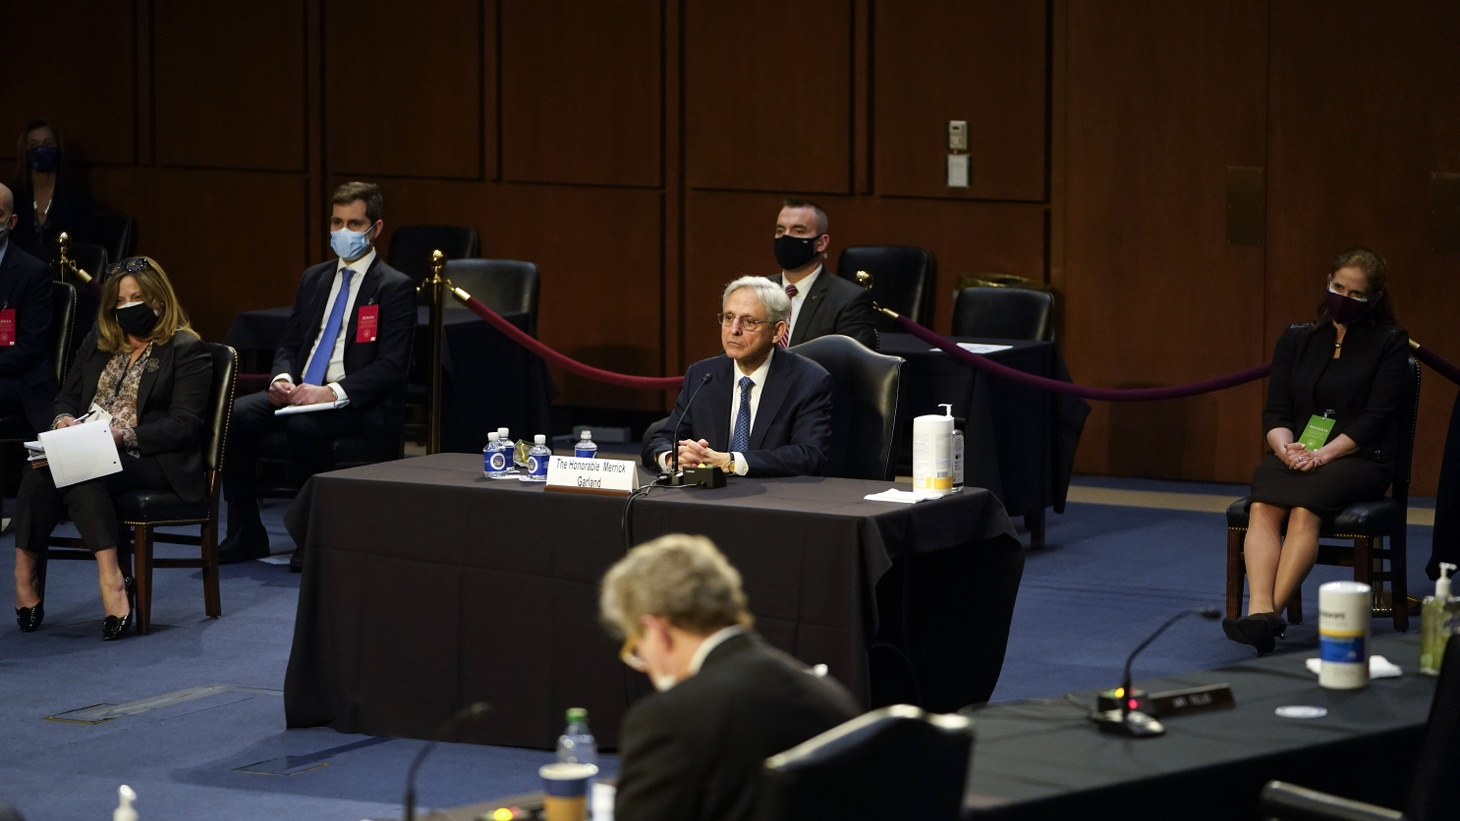 Attorney General nominee Merrick Garland at his confirmation hearing before the Senate Judiciary Committee. Joe Biden formally nominated appellate court Judge Merrick Garland to serve as the nation's chief law enforcement officer on Jan. 7, 2021, the day after the deadly Capitol insurrection.